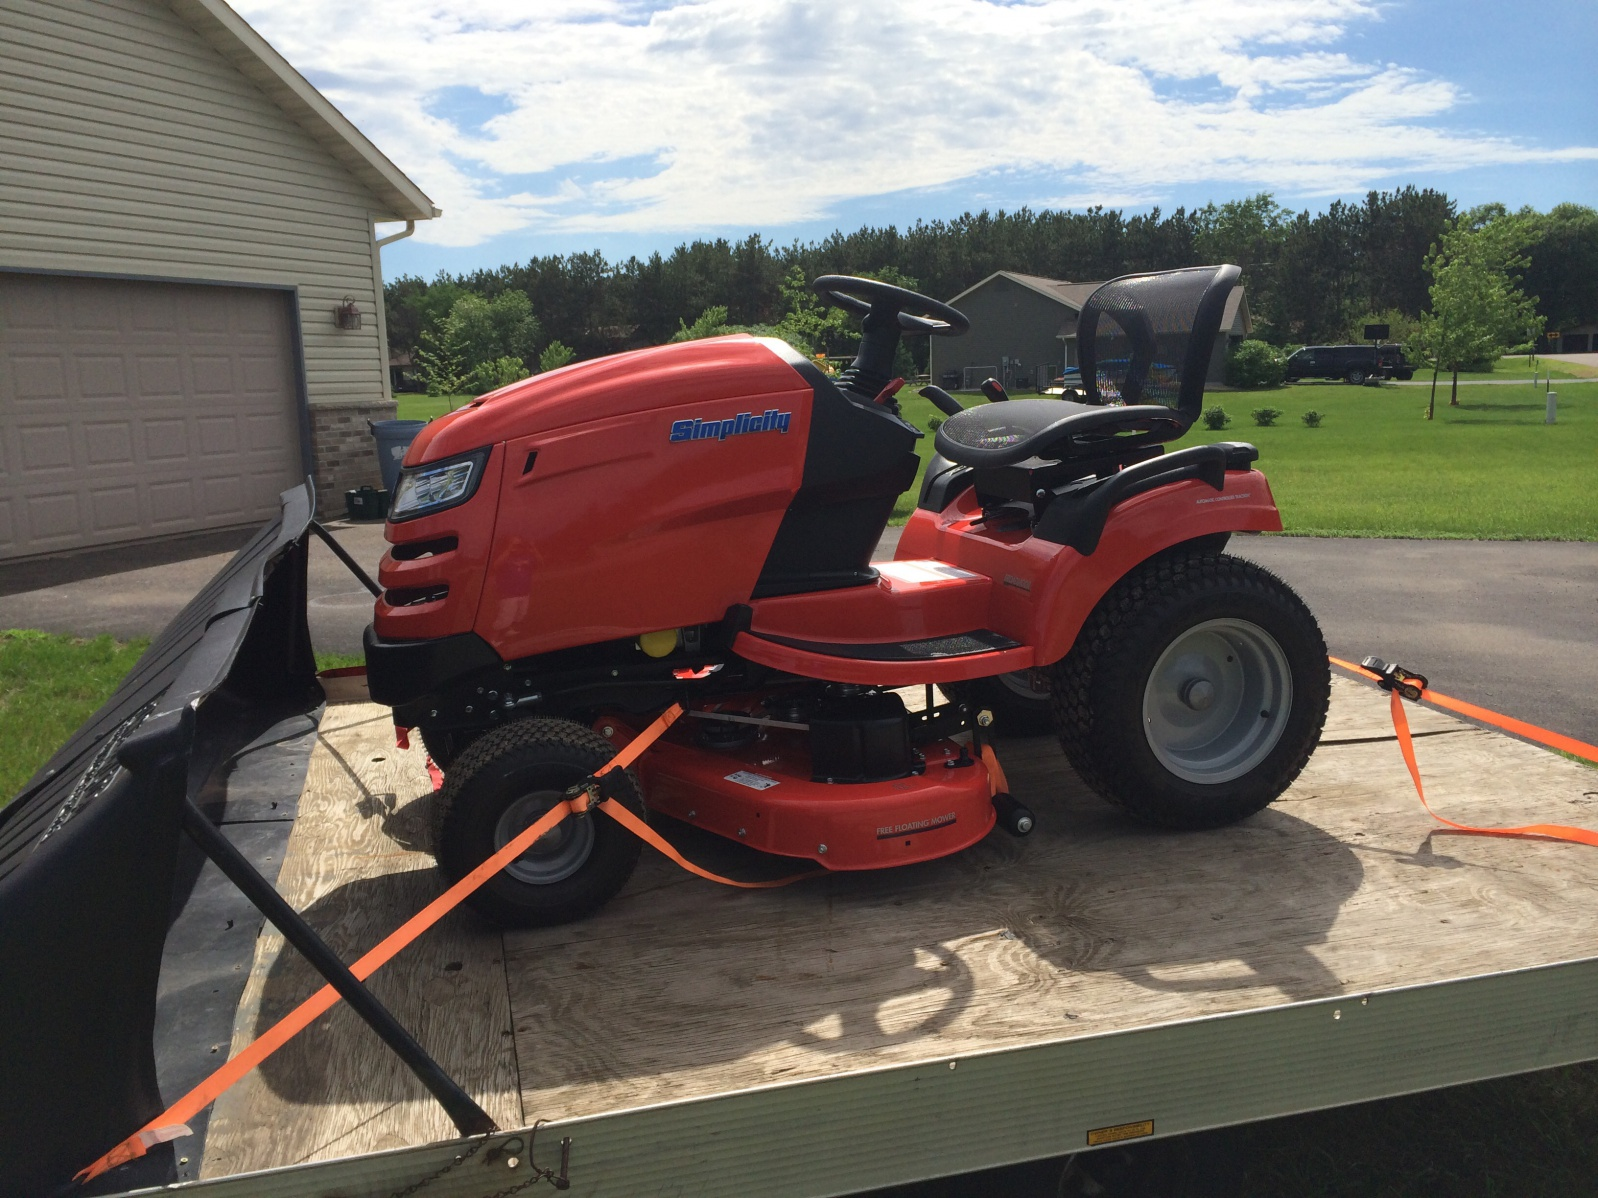 I pulled the trigger on a       - MyTractorForum com - The